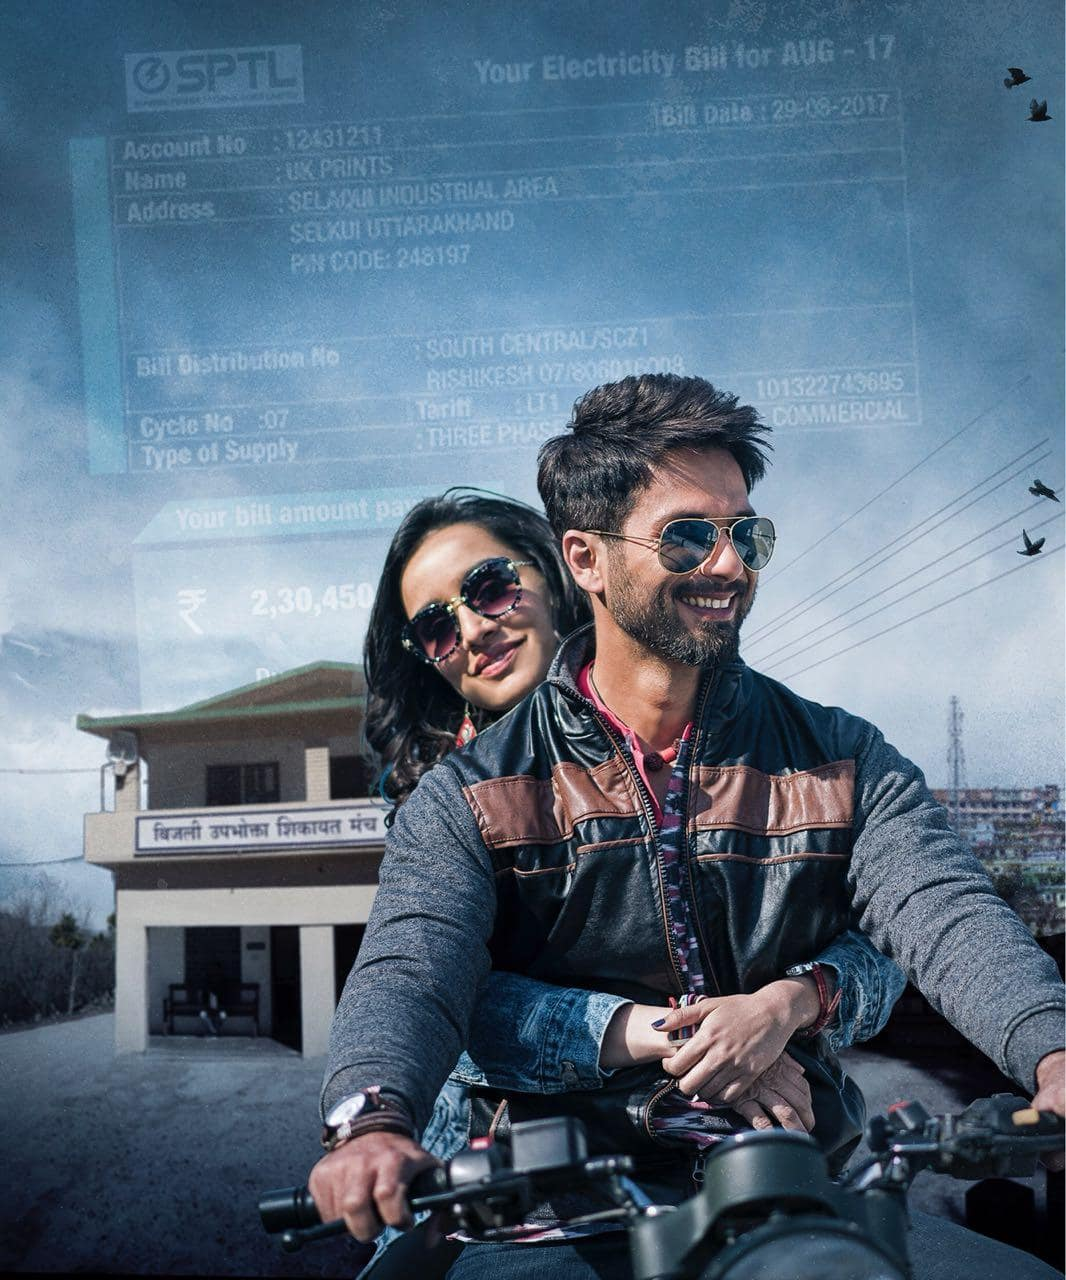 Shahid Kapoor and Shraddha Kapoor starrer Batti Gul Meter Chaalu trailer to be launched today